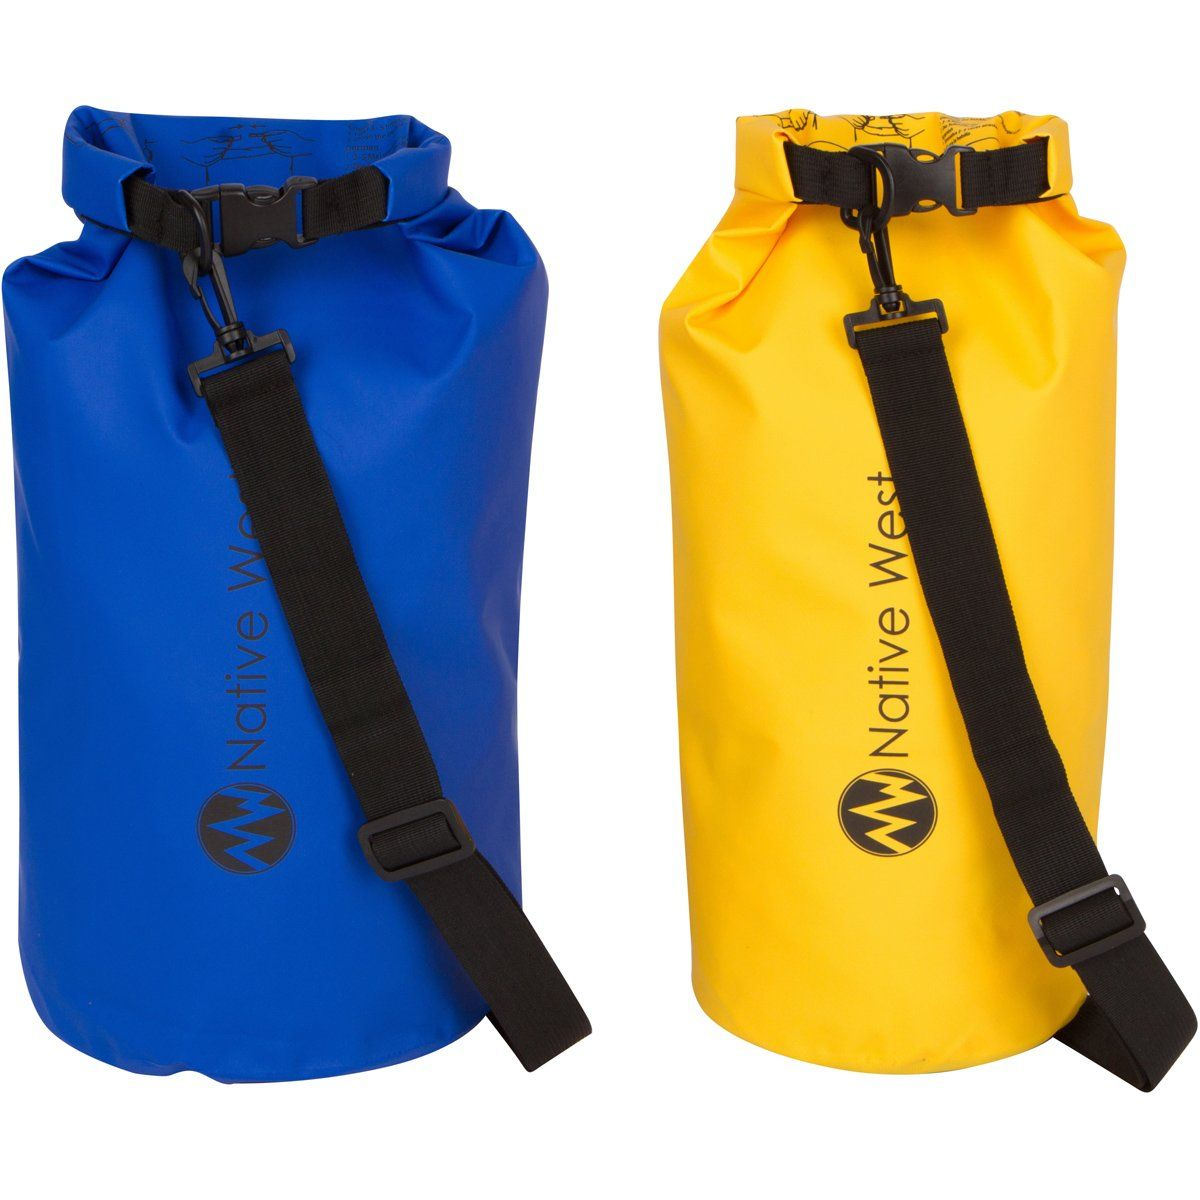 0ea9b3a87df6 Lightweight Compression Dry Bag with Shoulder Strap and Roll Top Closure  System. Waterproof Floating Gear Sack for Boating Kayaking Fishing Rafting  Camping ...